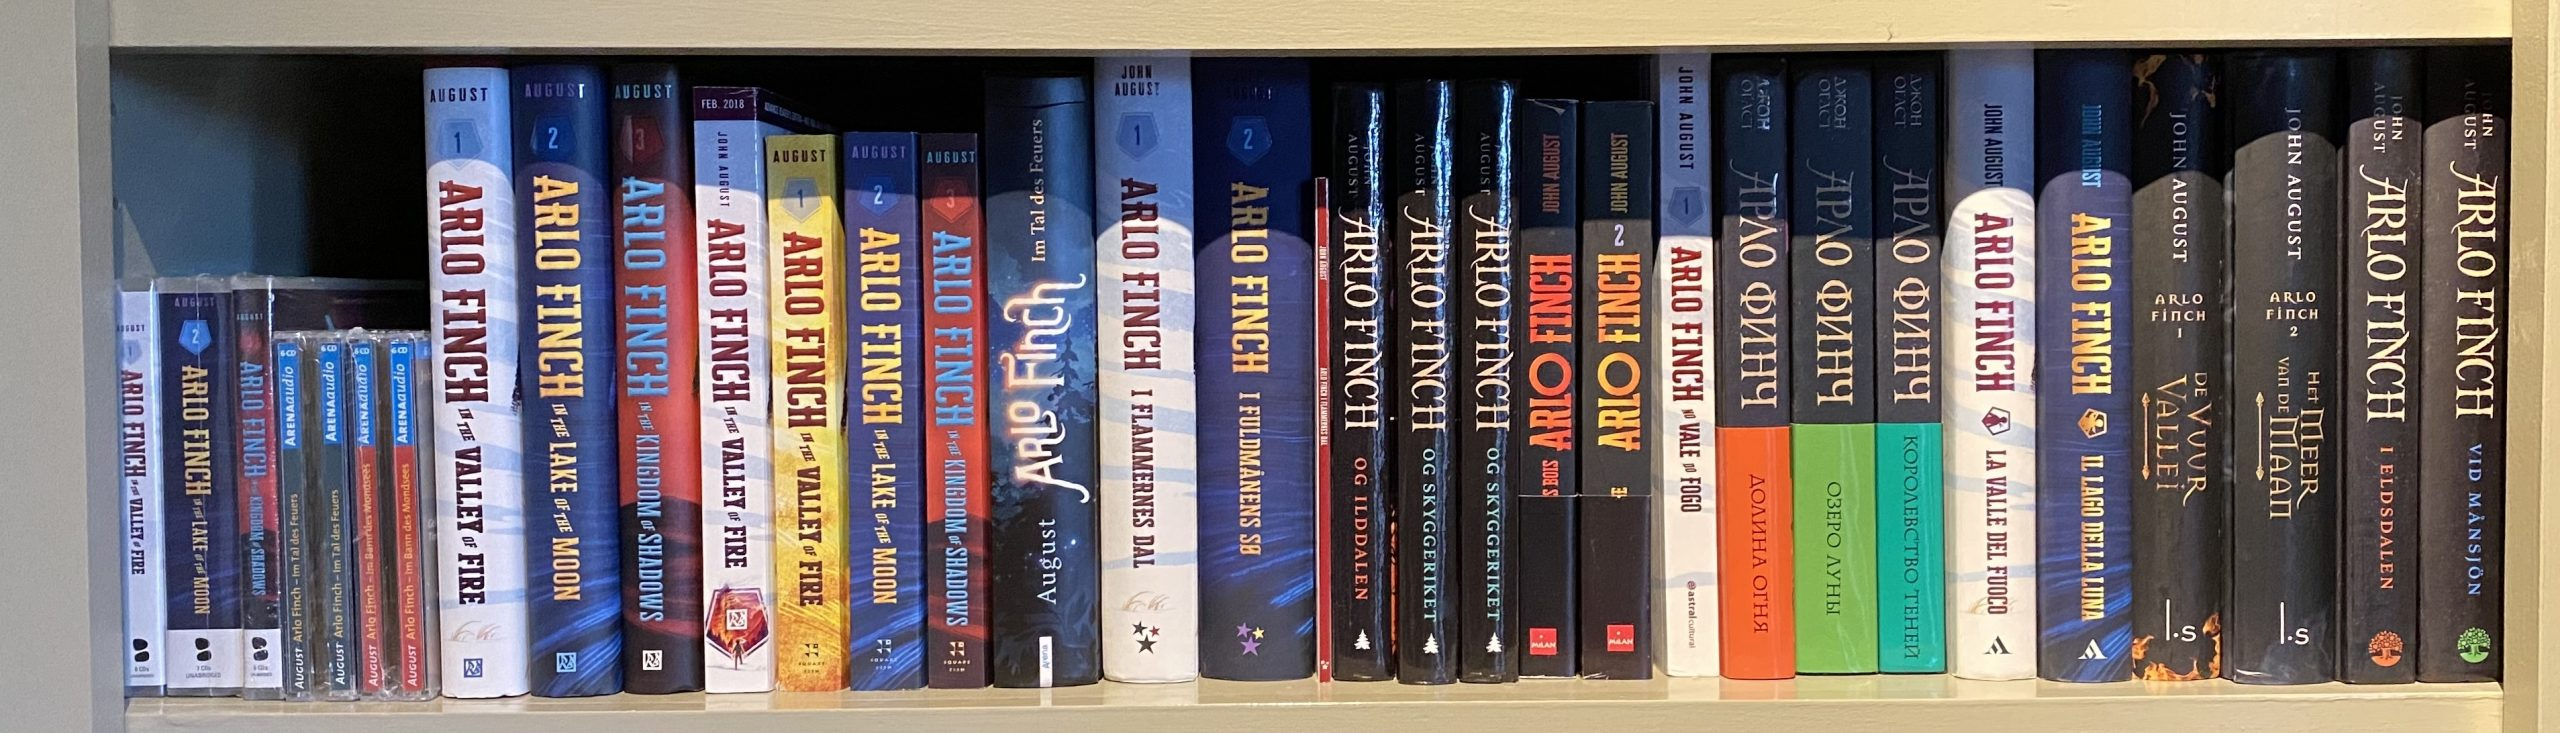 shelf with arlo finch books lined up